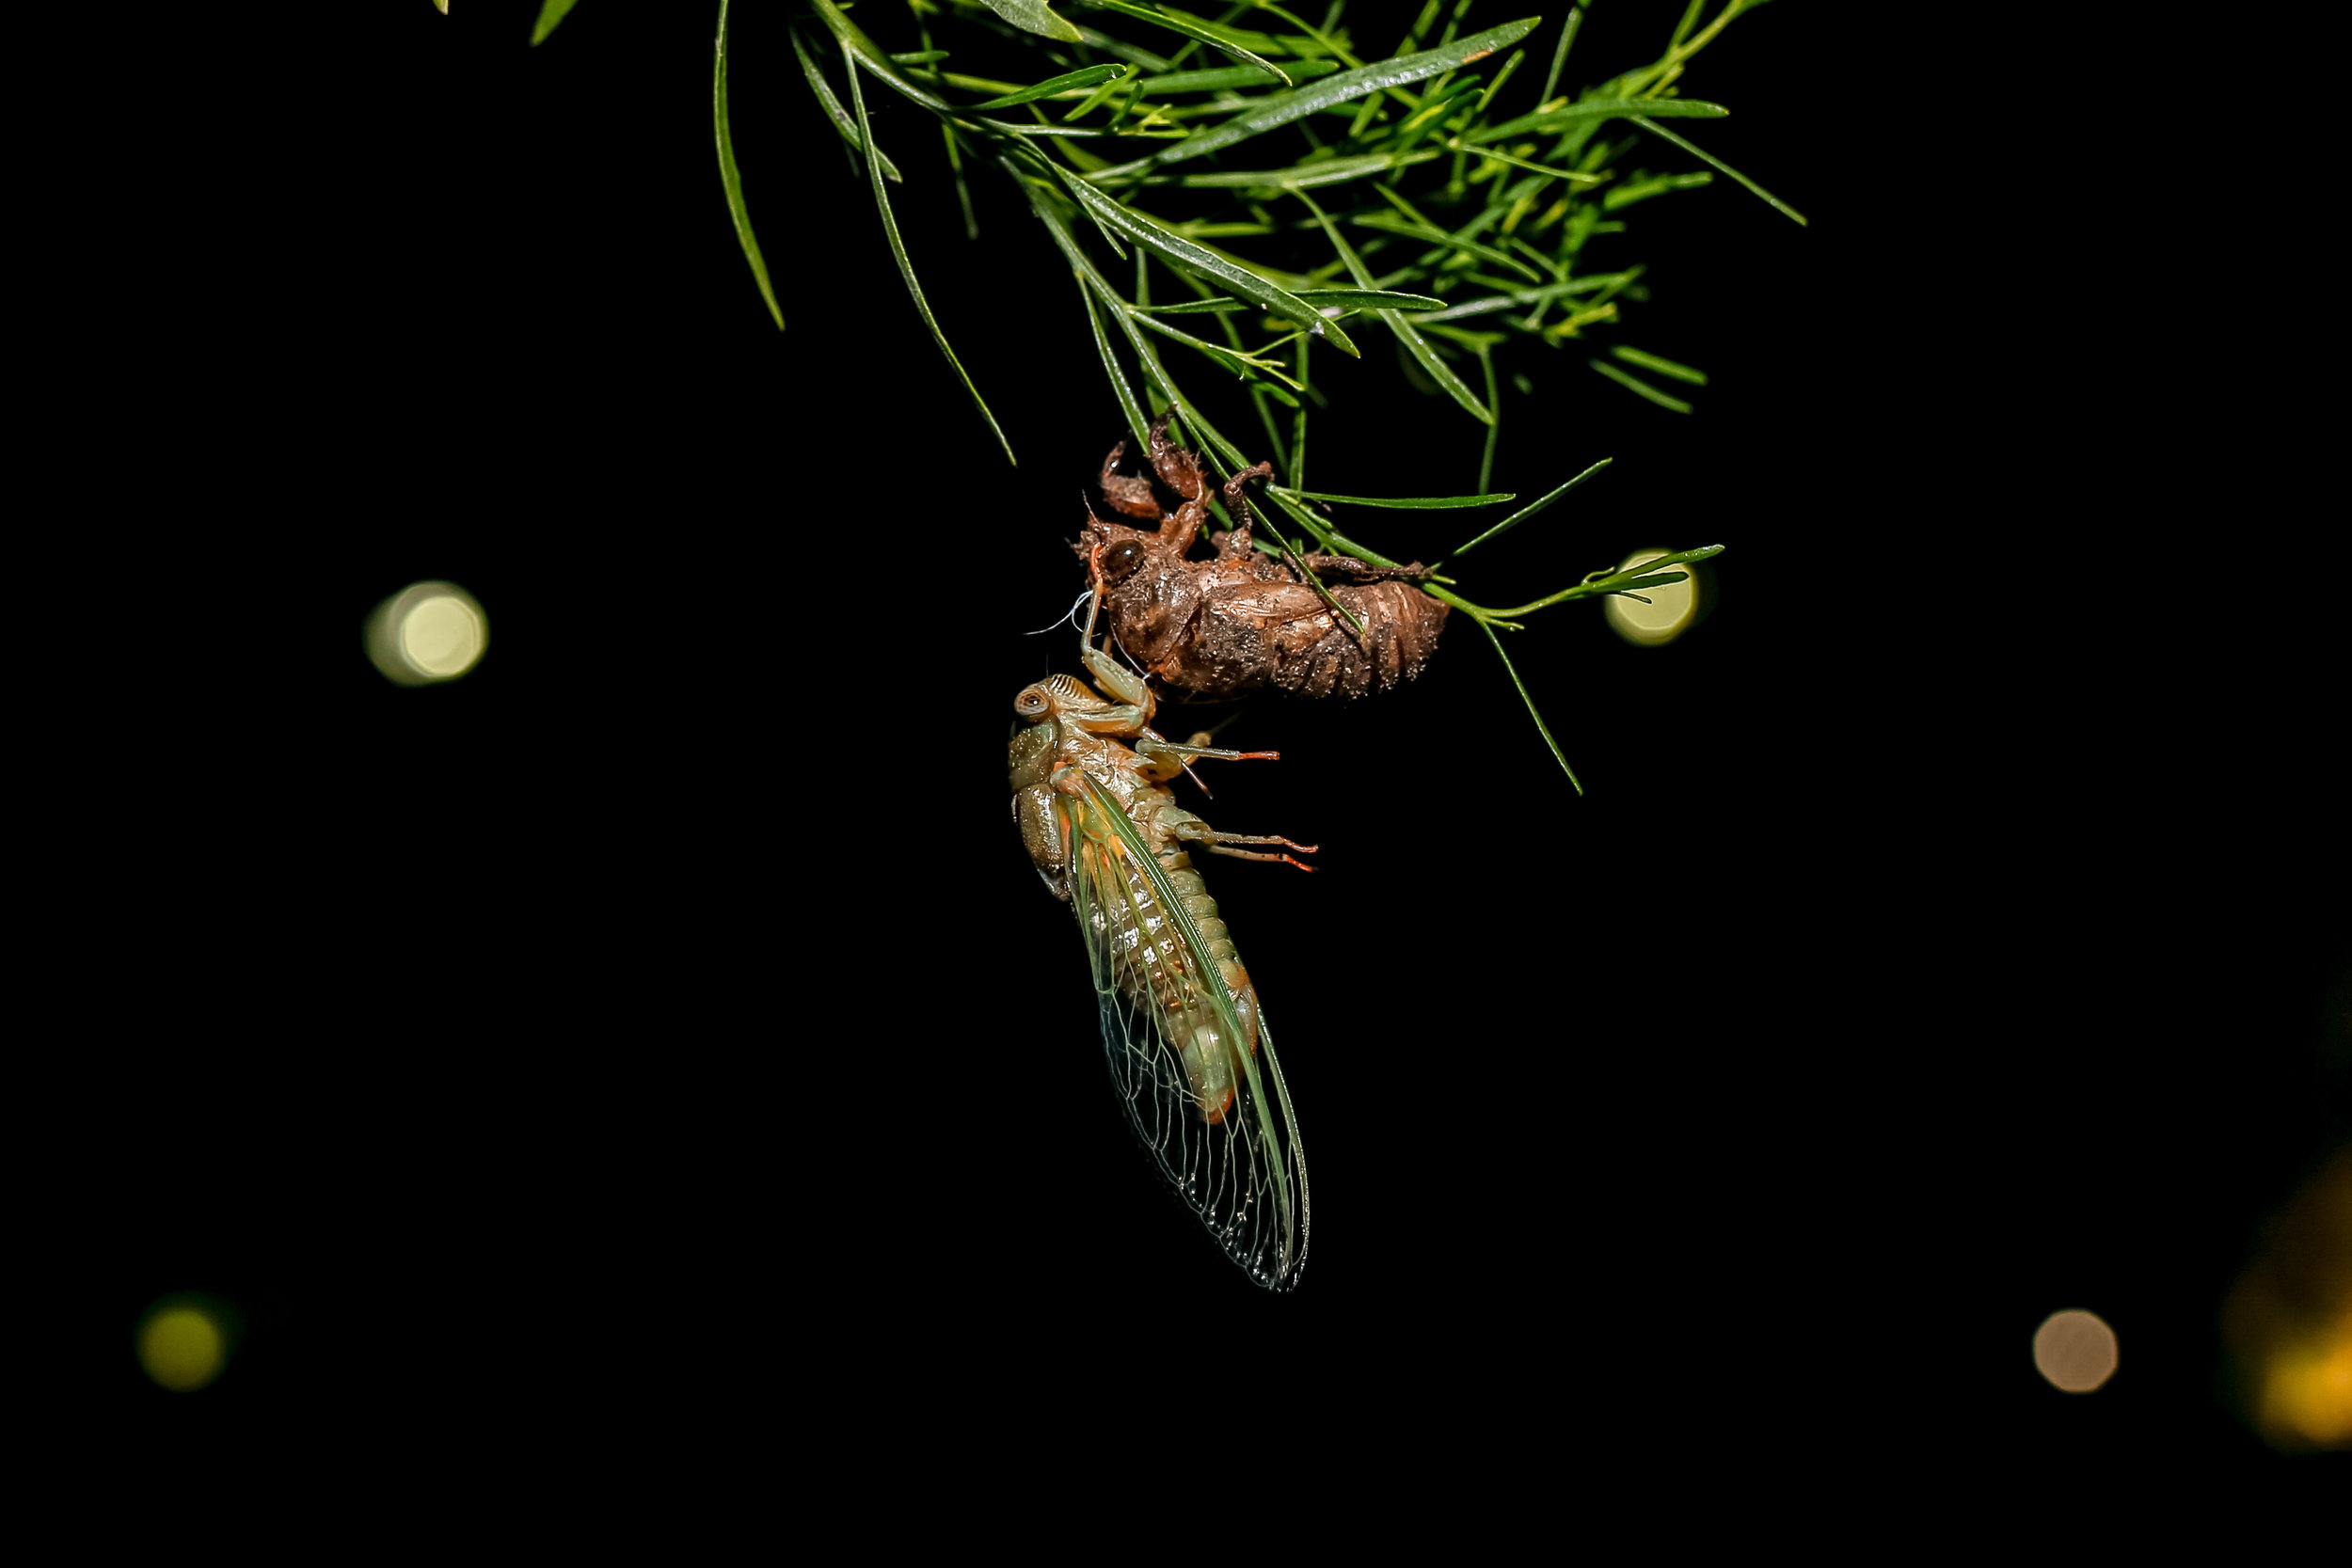 APRIL 3, 2019 | A CICDAOIDEA CLIMBS OUT OF ITS SHELL TO BEGIN HIS LAST STAGE AS A FULL ADULT.